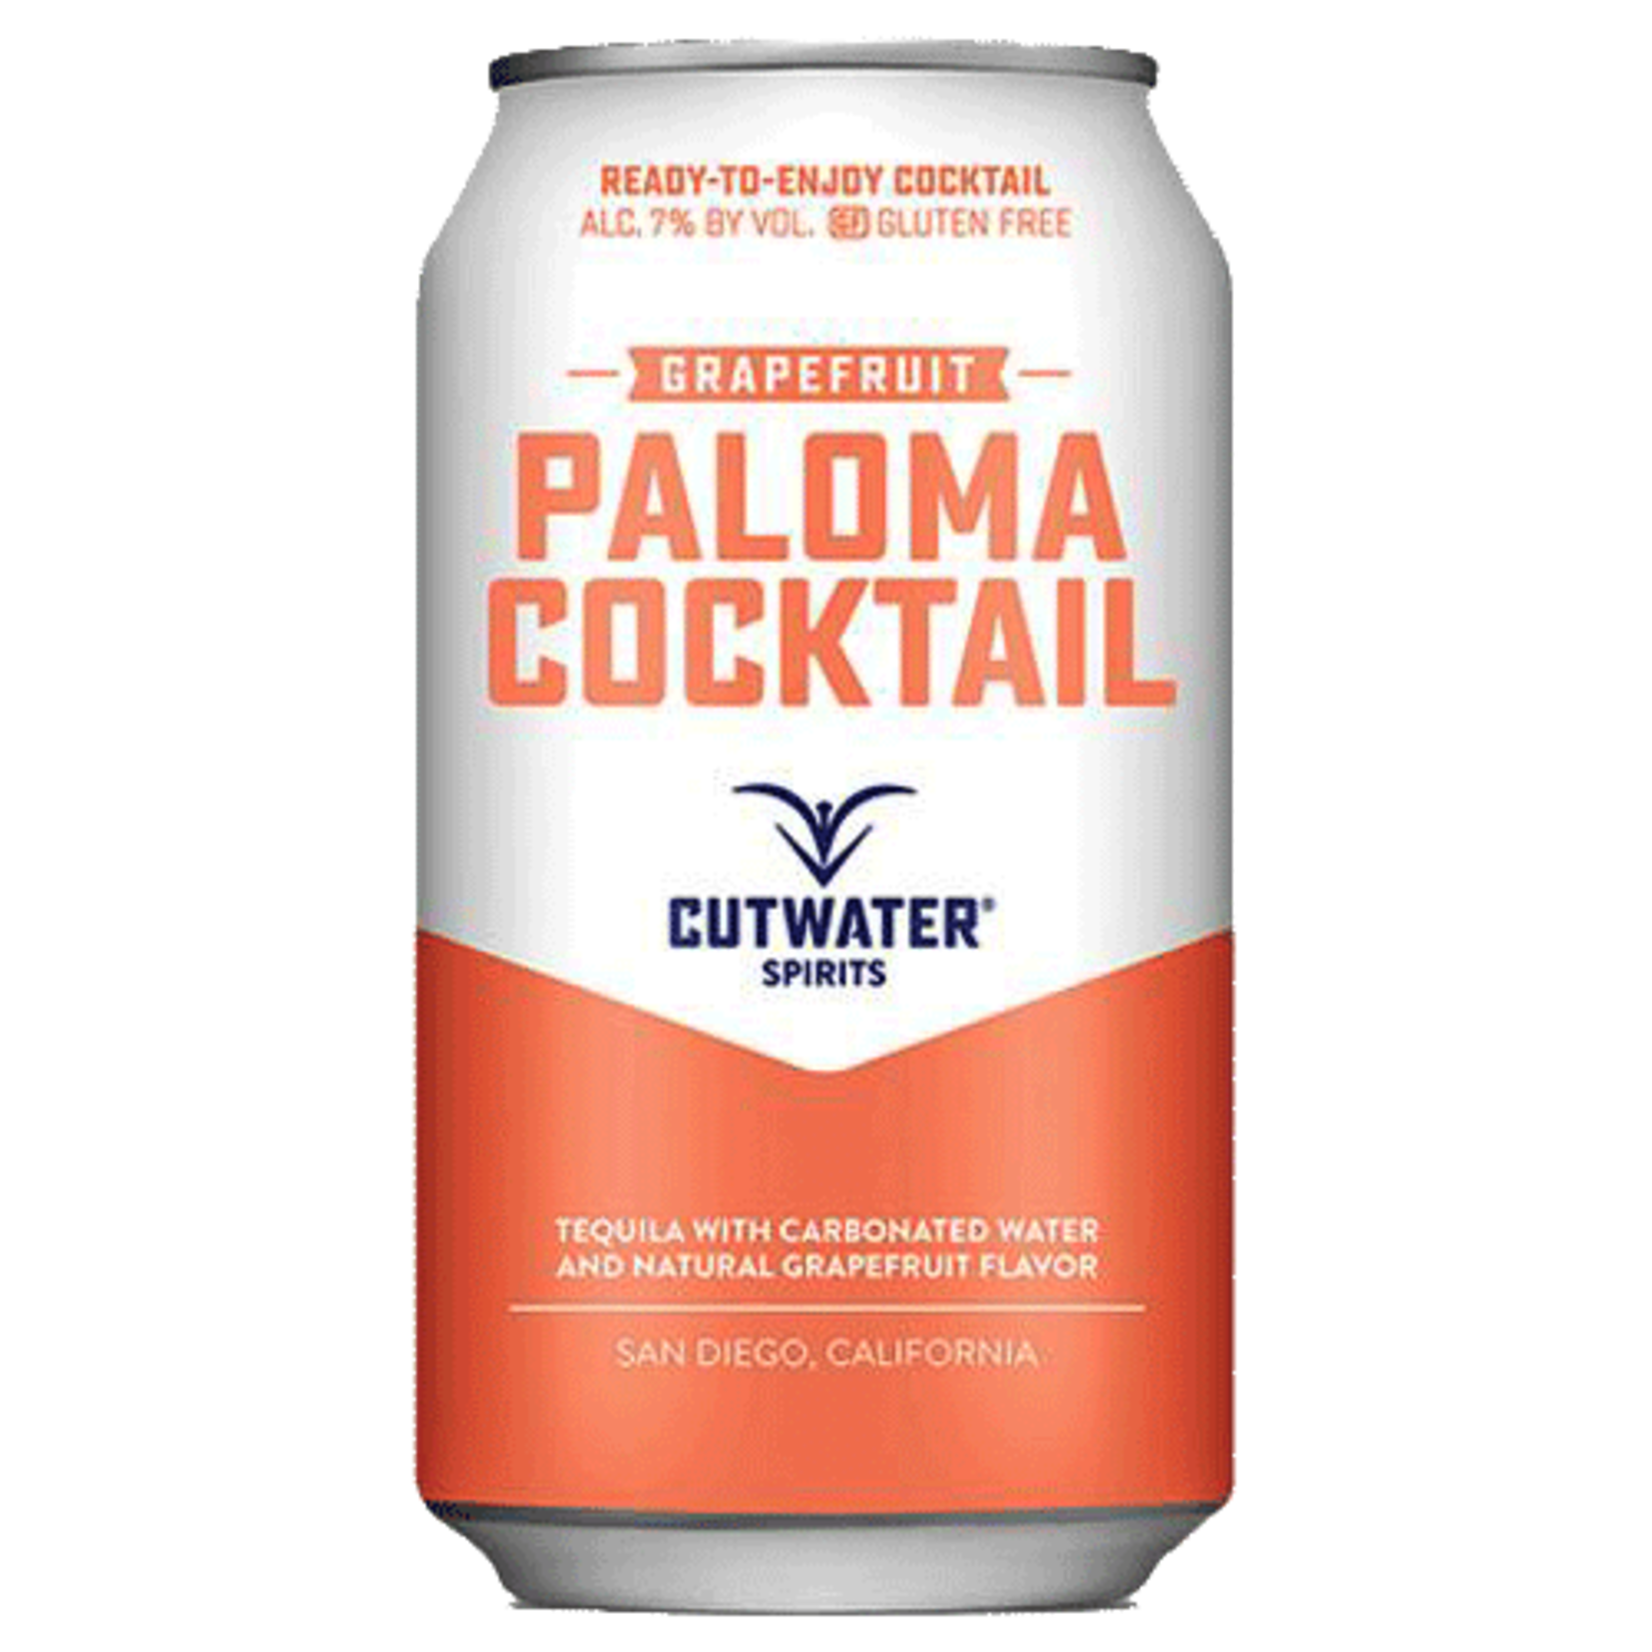 Spirits Cutwater Tequila Grapefruit Paloma Cocktail Can 355ml